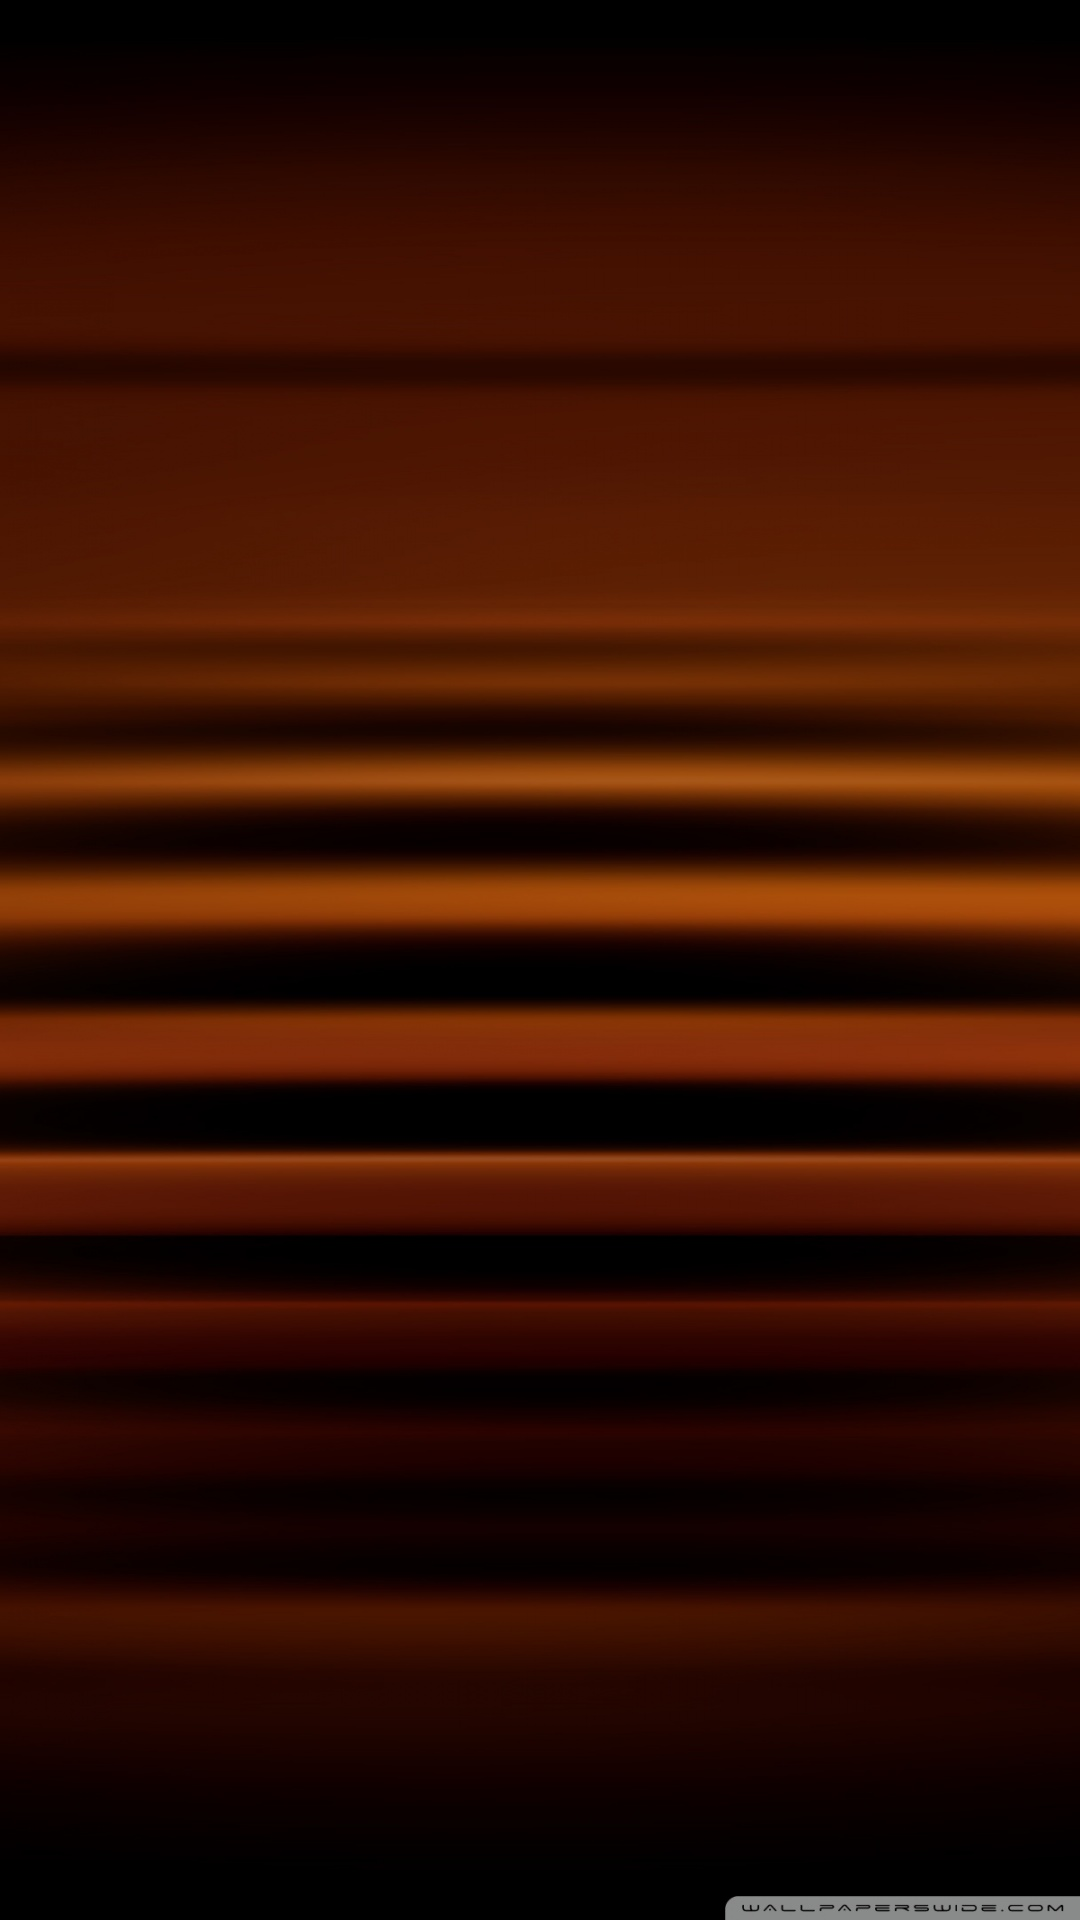 Smartphone Dark Shade Wallpaper For Mobile 734251 Hd Wallpaper Backgrounds Download